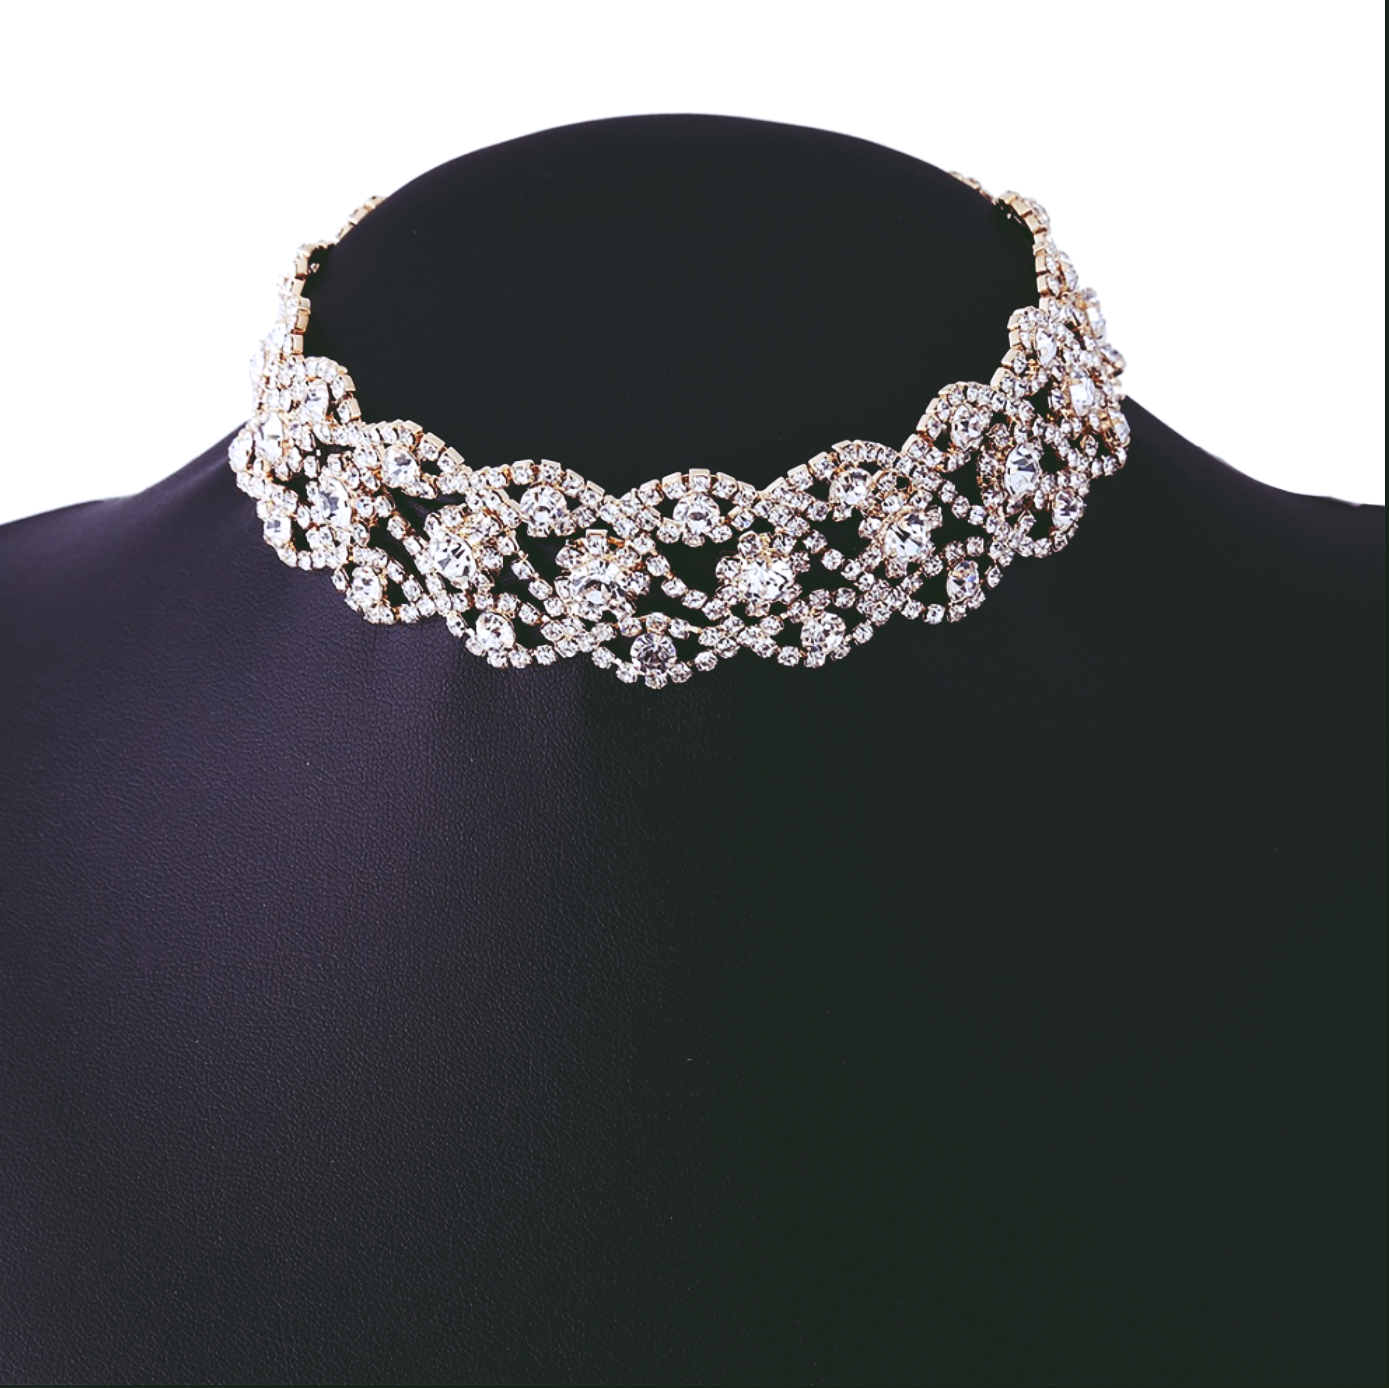 WOMEN FLORAL CRYSTAL NECKLACE SILVER GOLD SPARKLING FASHION PARTY BRIDAL JEWELRY